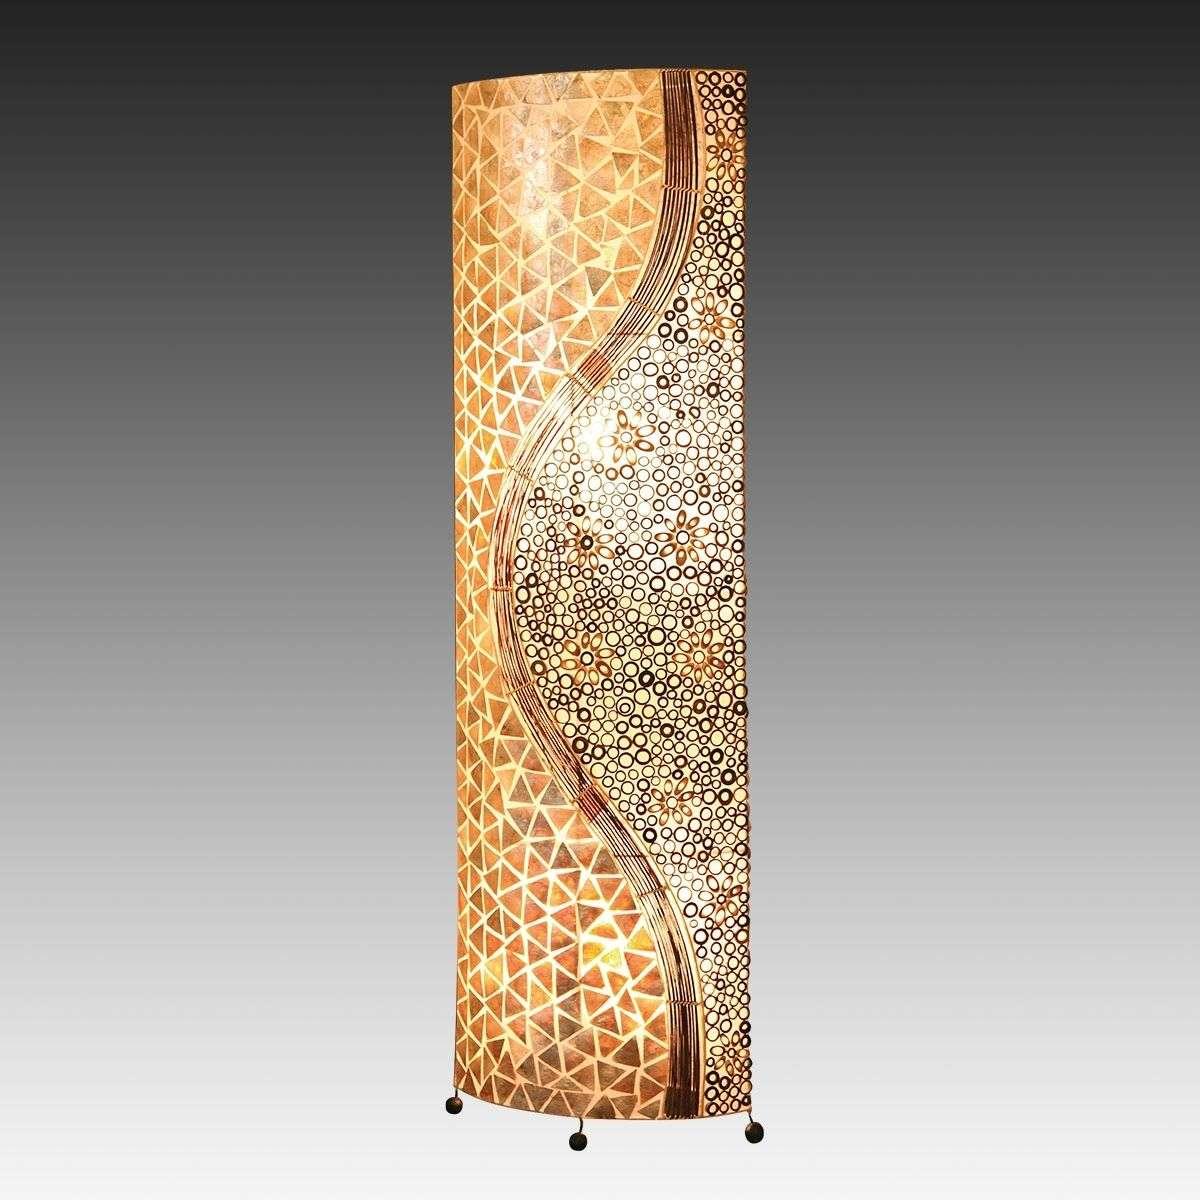 Bali Ethnic-look Oval Mother-of-Pearl Floor Lamp - Bali Ethnic-look Oval Mother-of-Pearl Floor Lamp Lights.co.uk